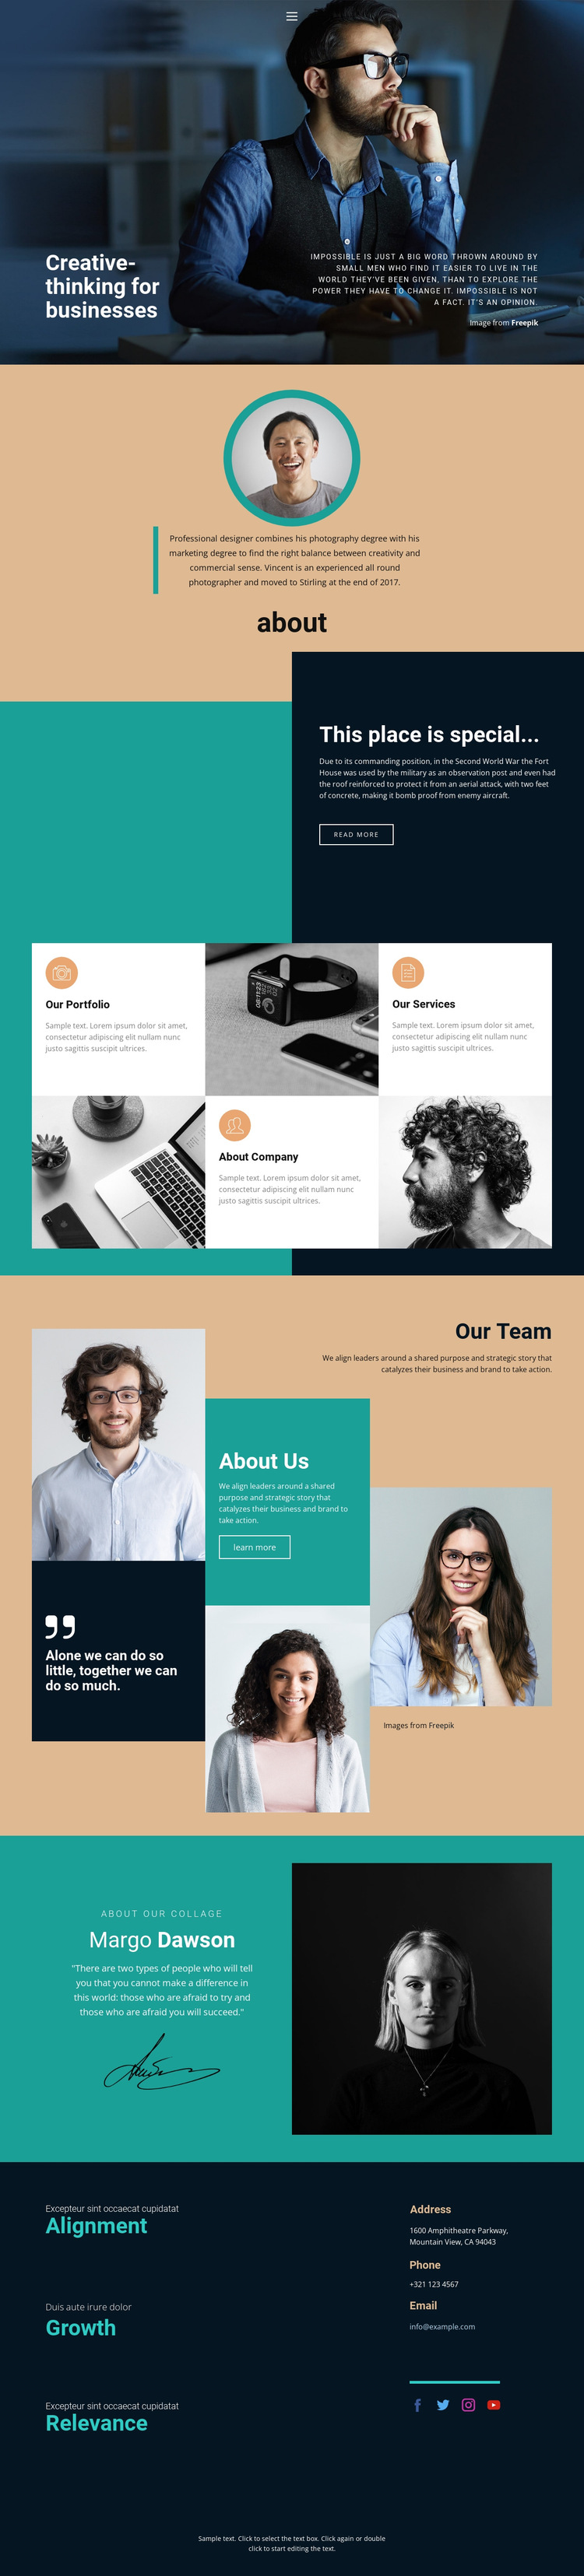 Creative Thinking for business Joomla Template